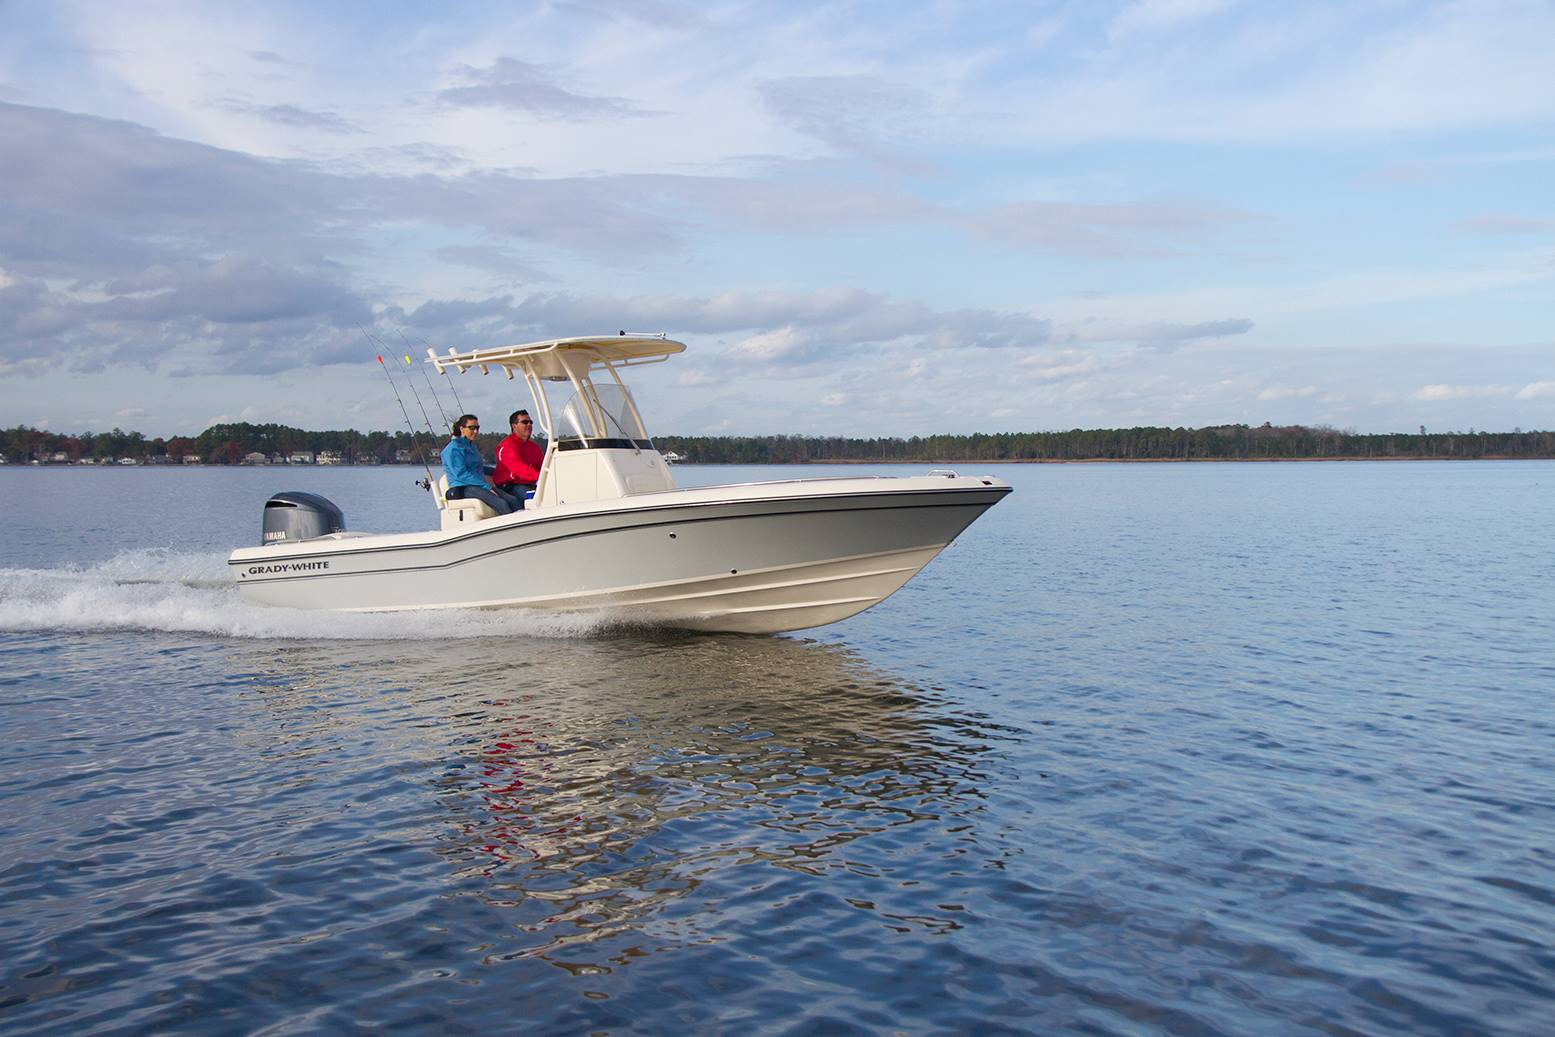 A center console Grady-White heads out for a day of fishing with two people aboard.